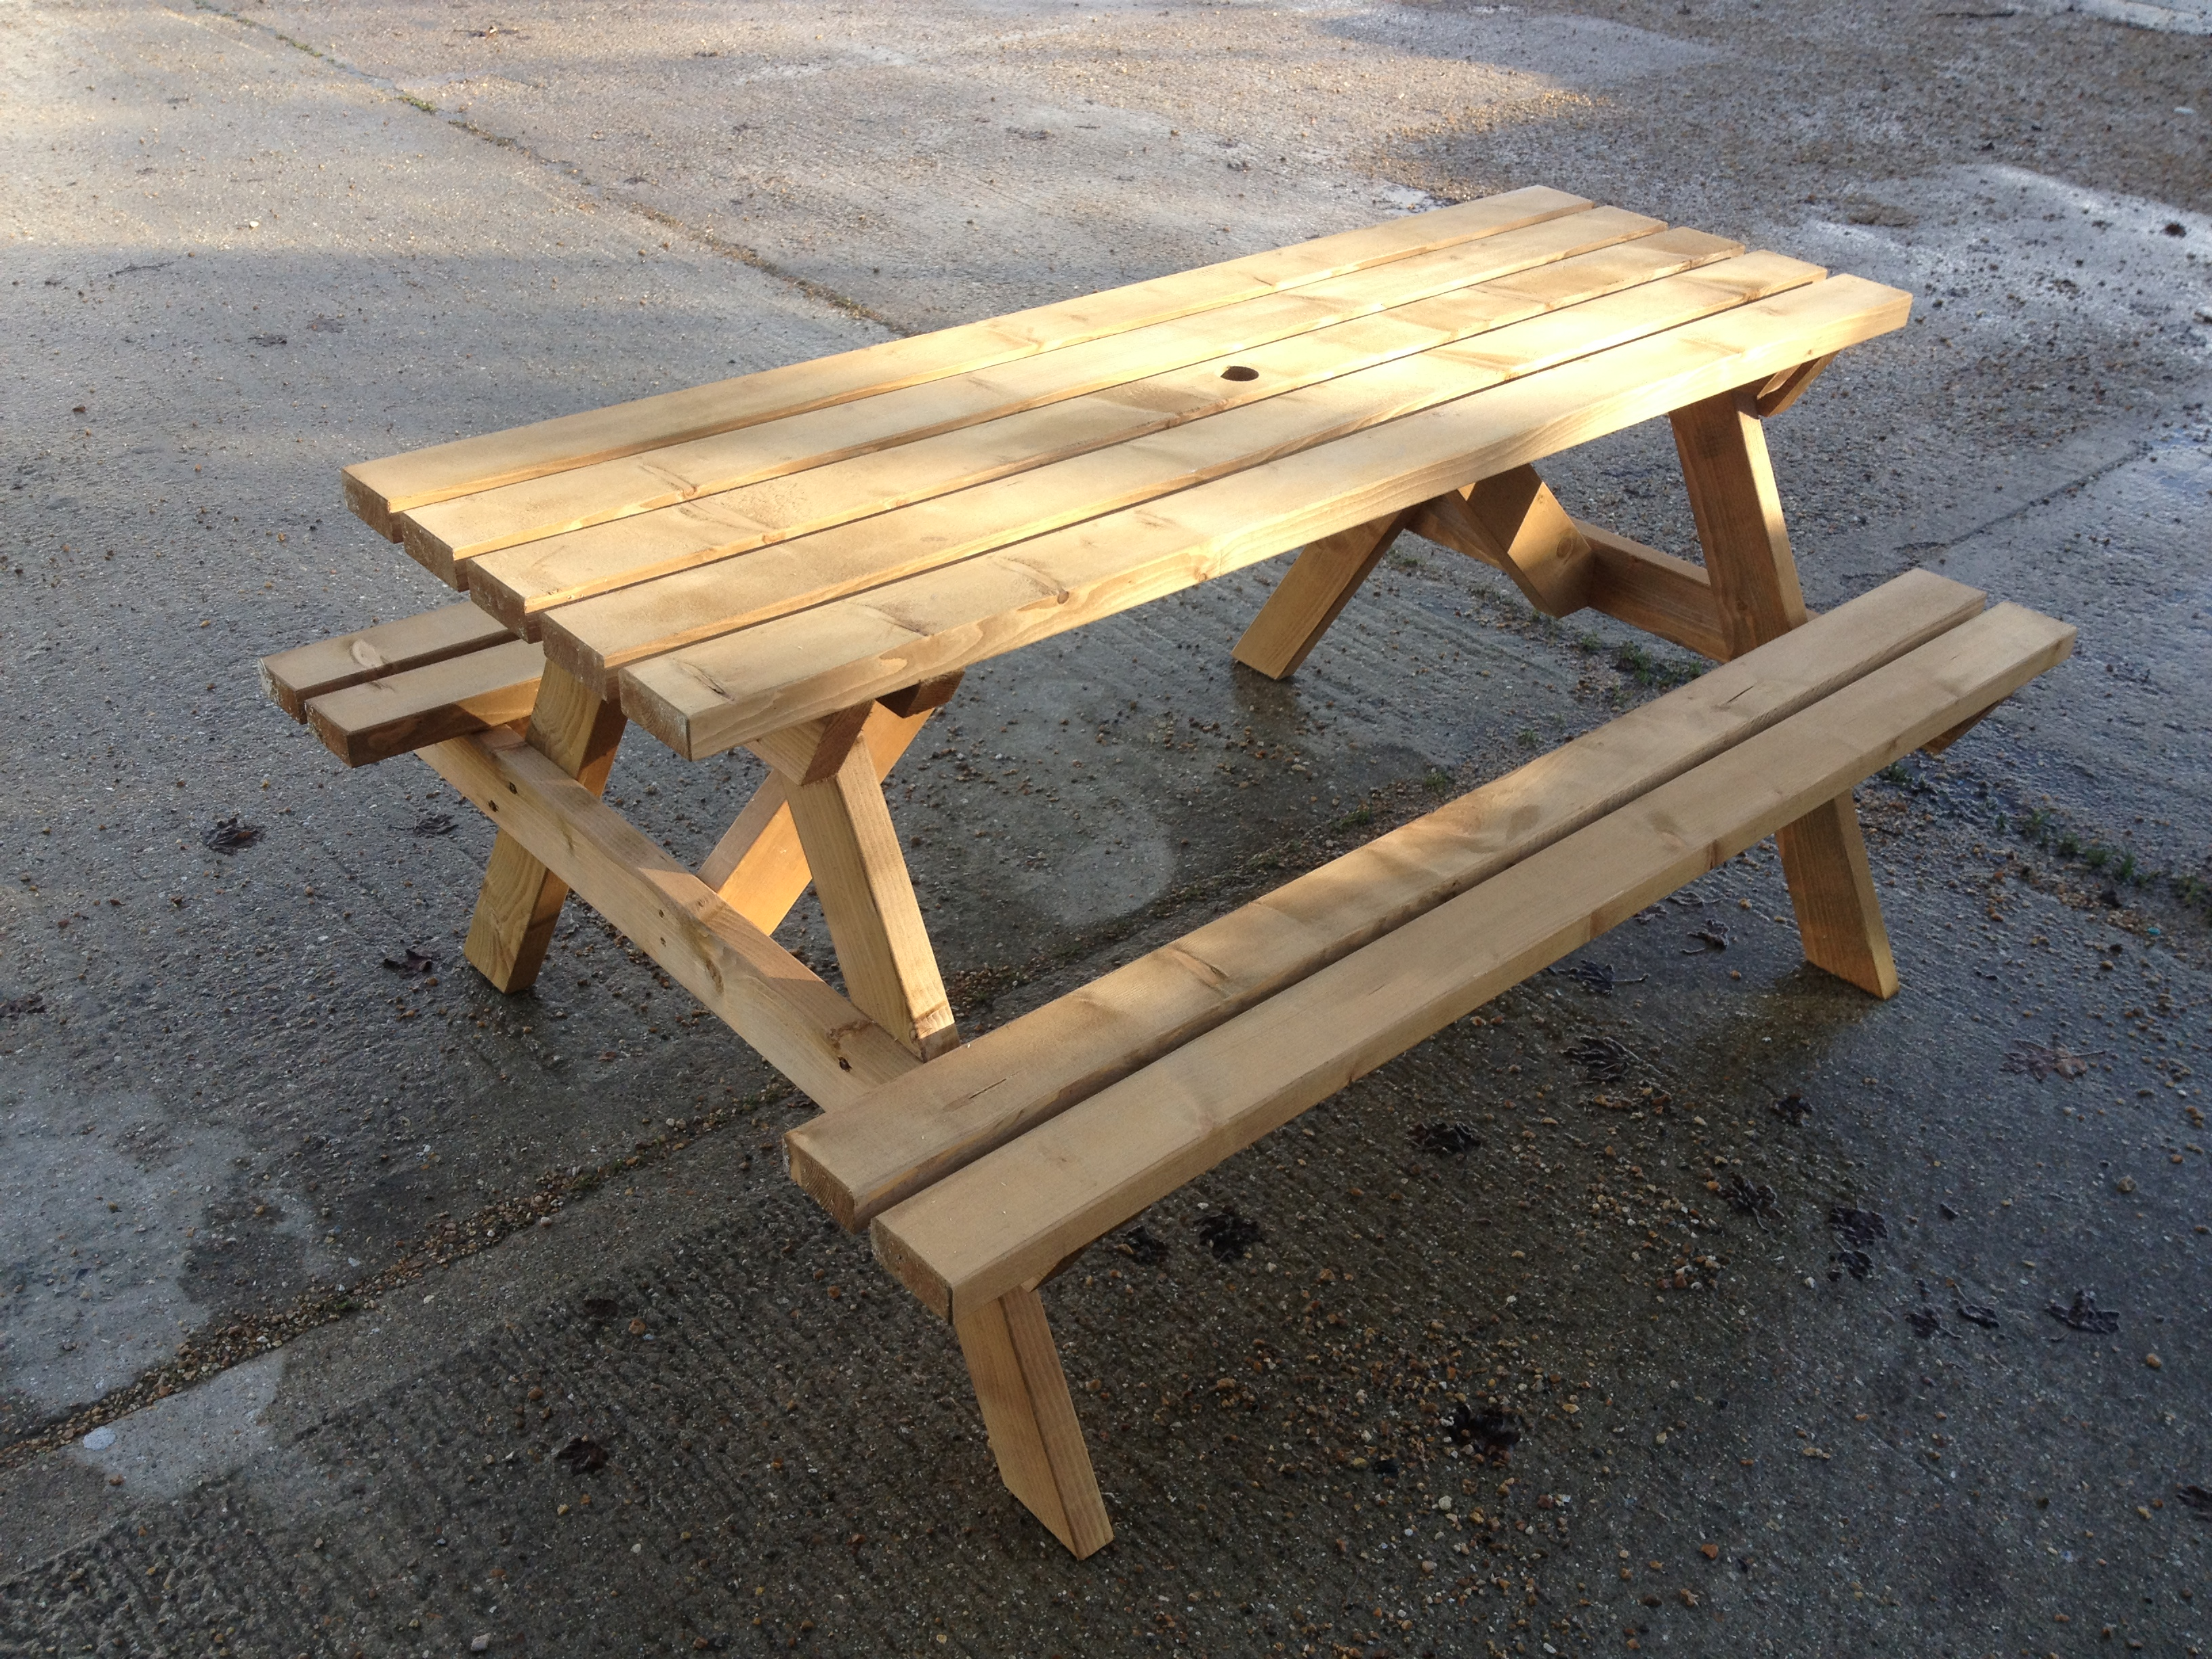 Commercial Picnic Tables And Benches 28 Images Commercial Site Furnishings Including Benches